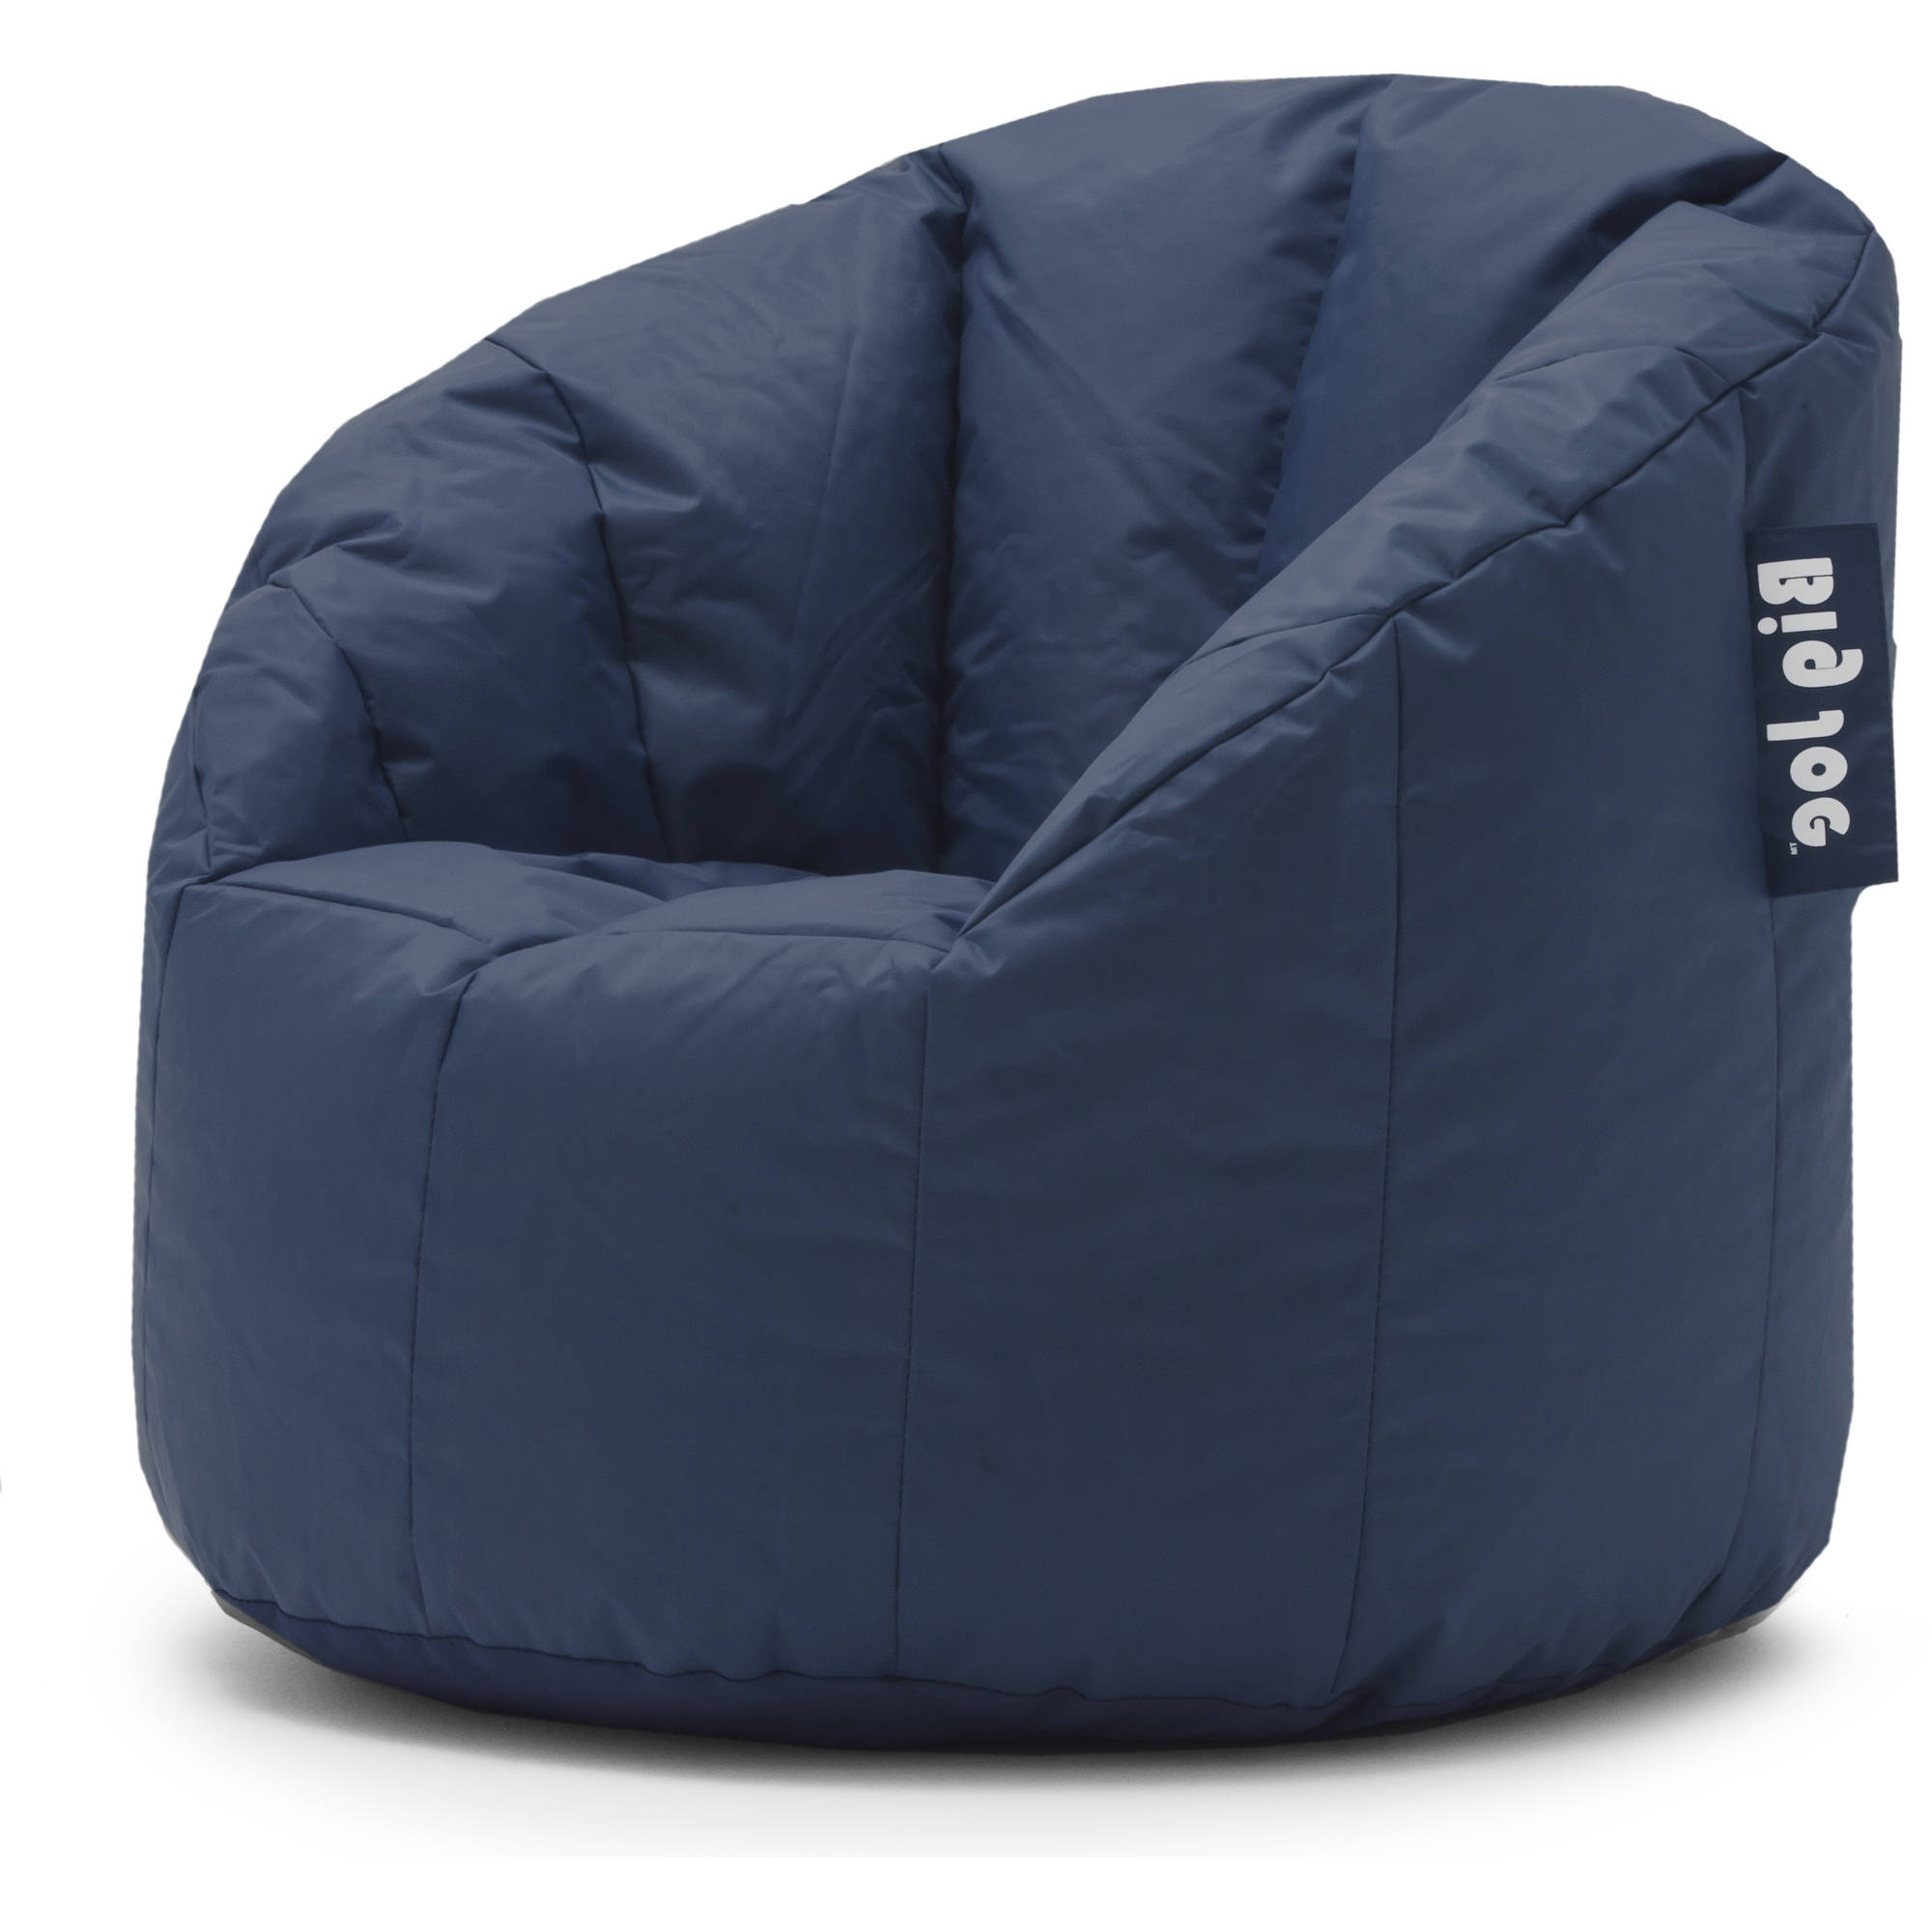 Most Recent Big Sofa Chairs In Kids' Chairs & Seating – Walmart (View 4 of 15)